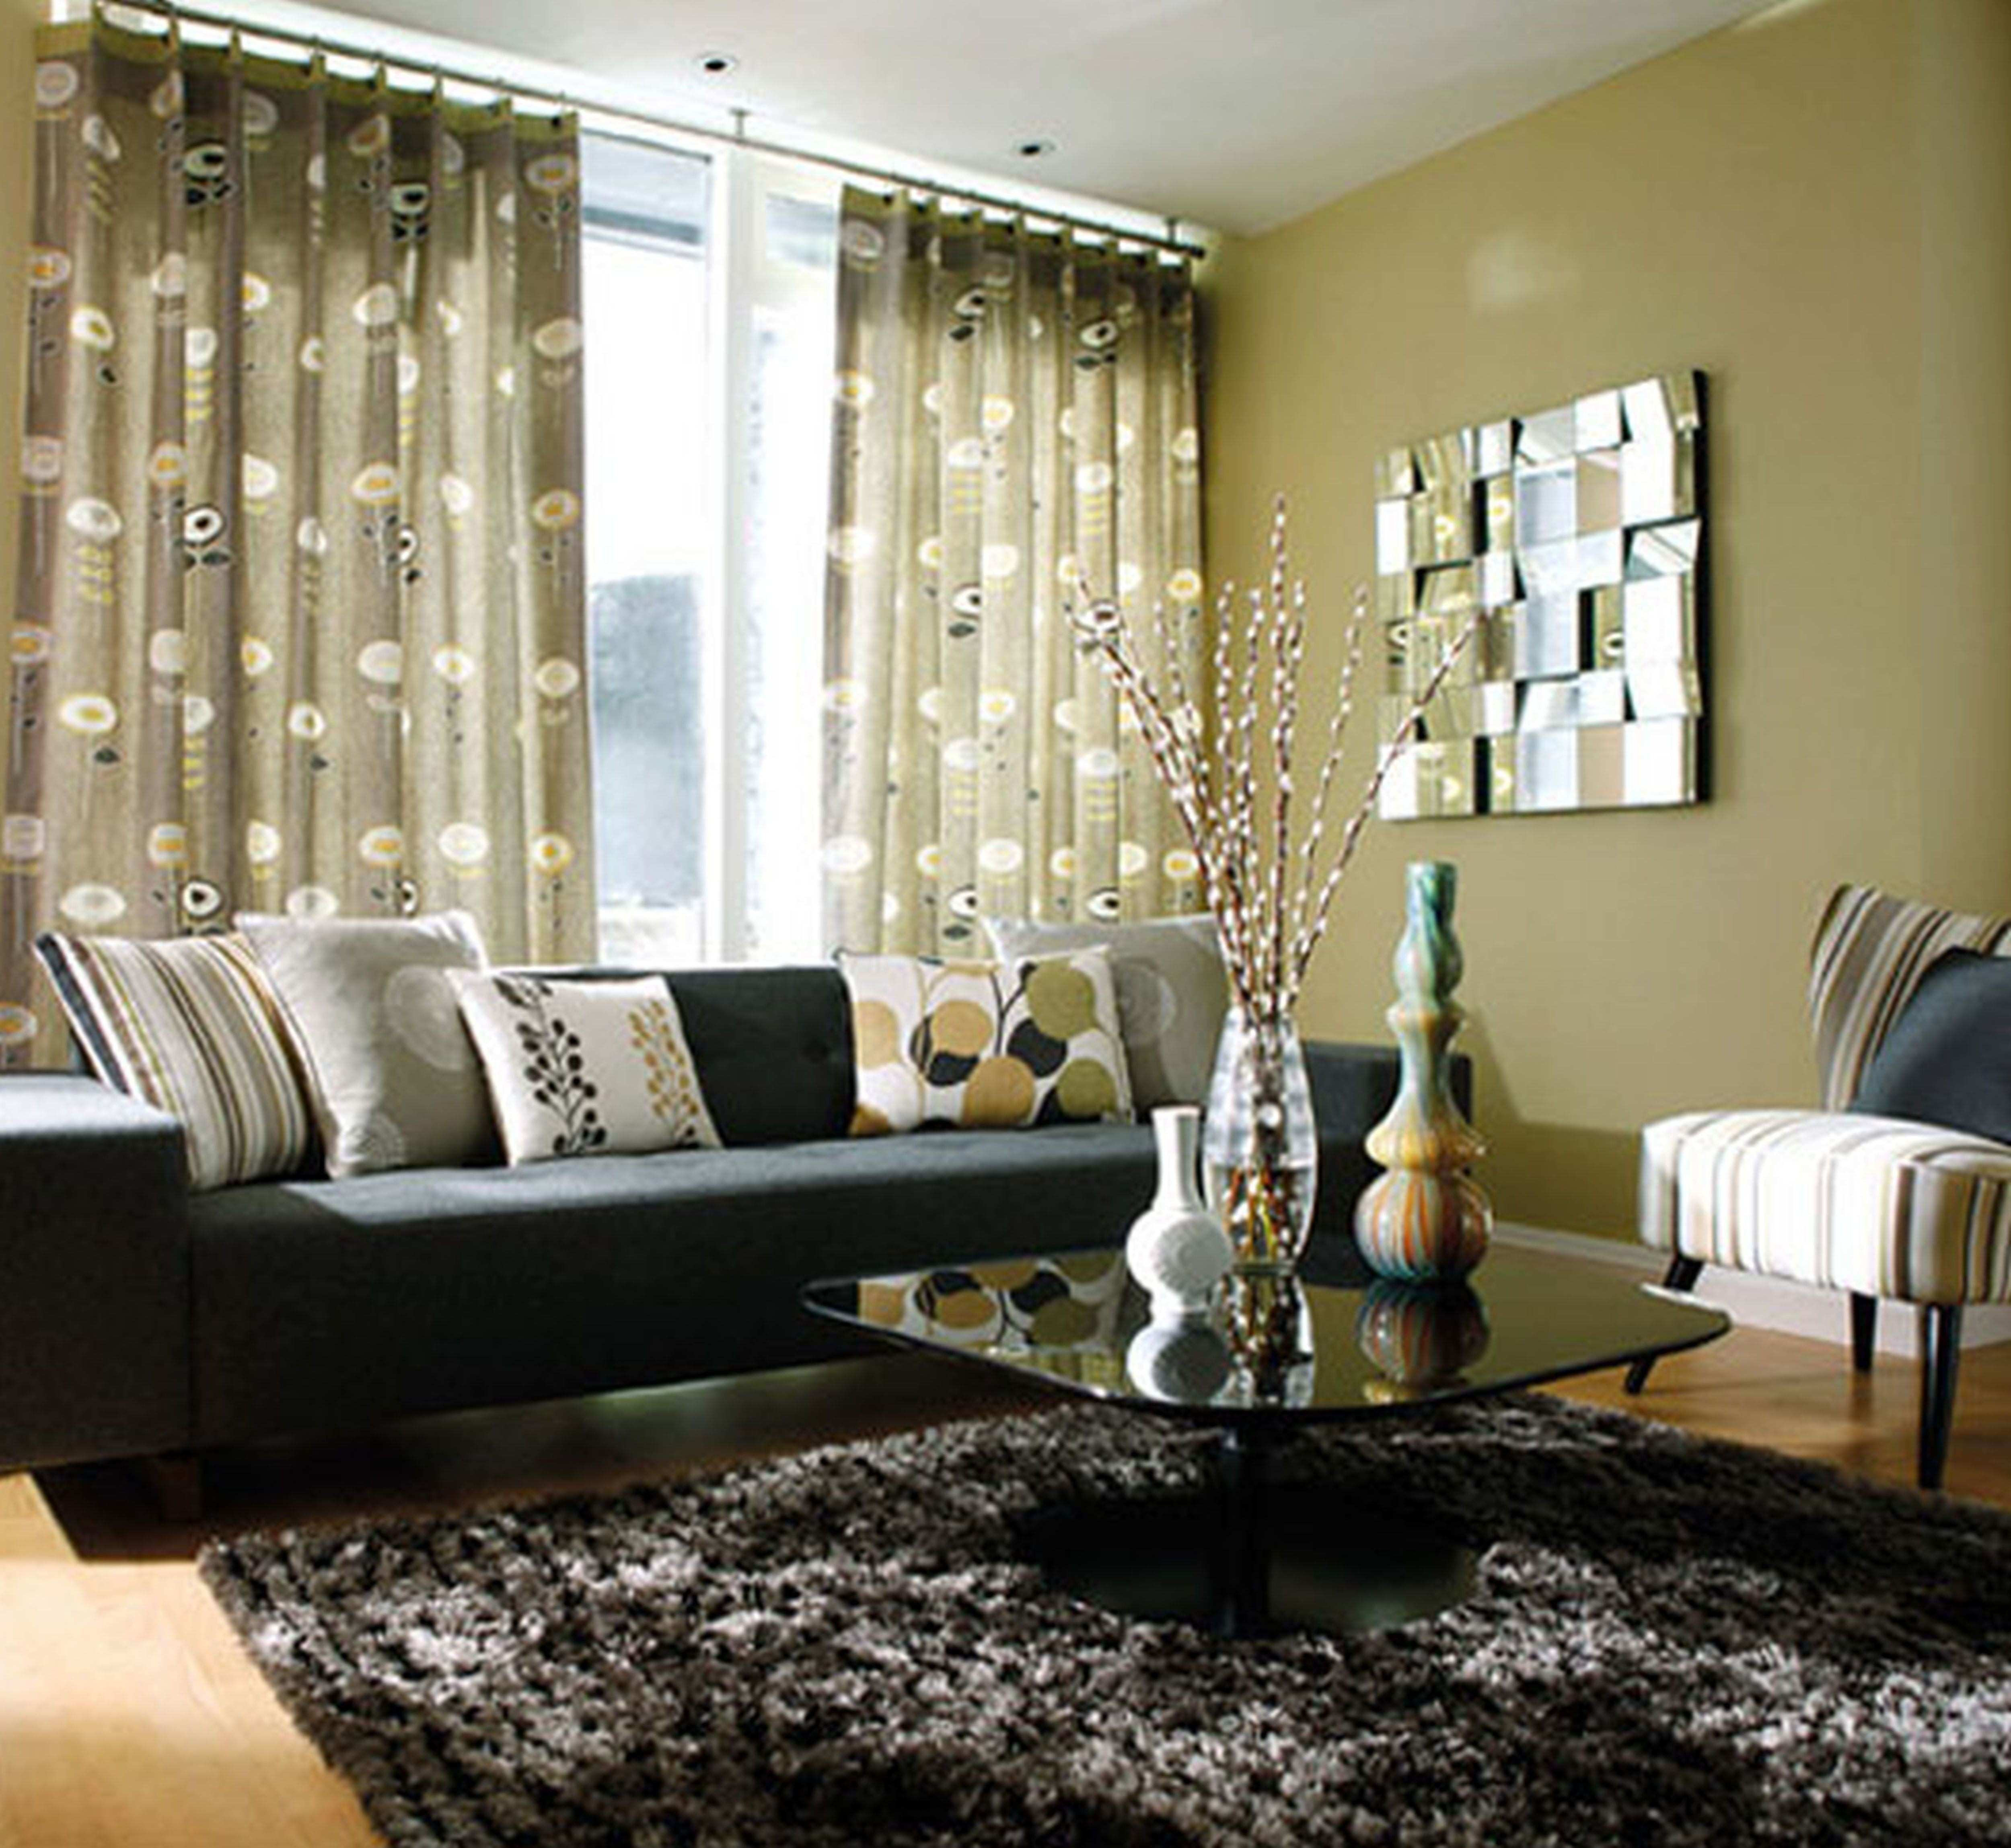 hardwood floors and grey walls of decorating ideas for living rooms with hardwood floors elegant home pertaining to decorating ideas for living rooms with hardwood floors elegant flooring ideas for living room luxury ice